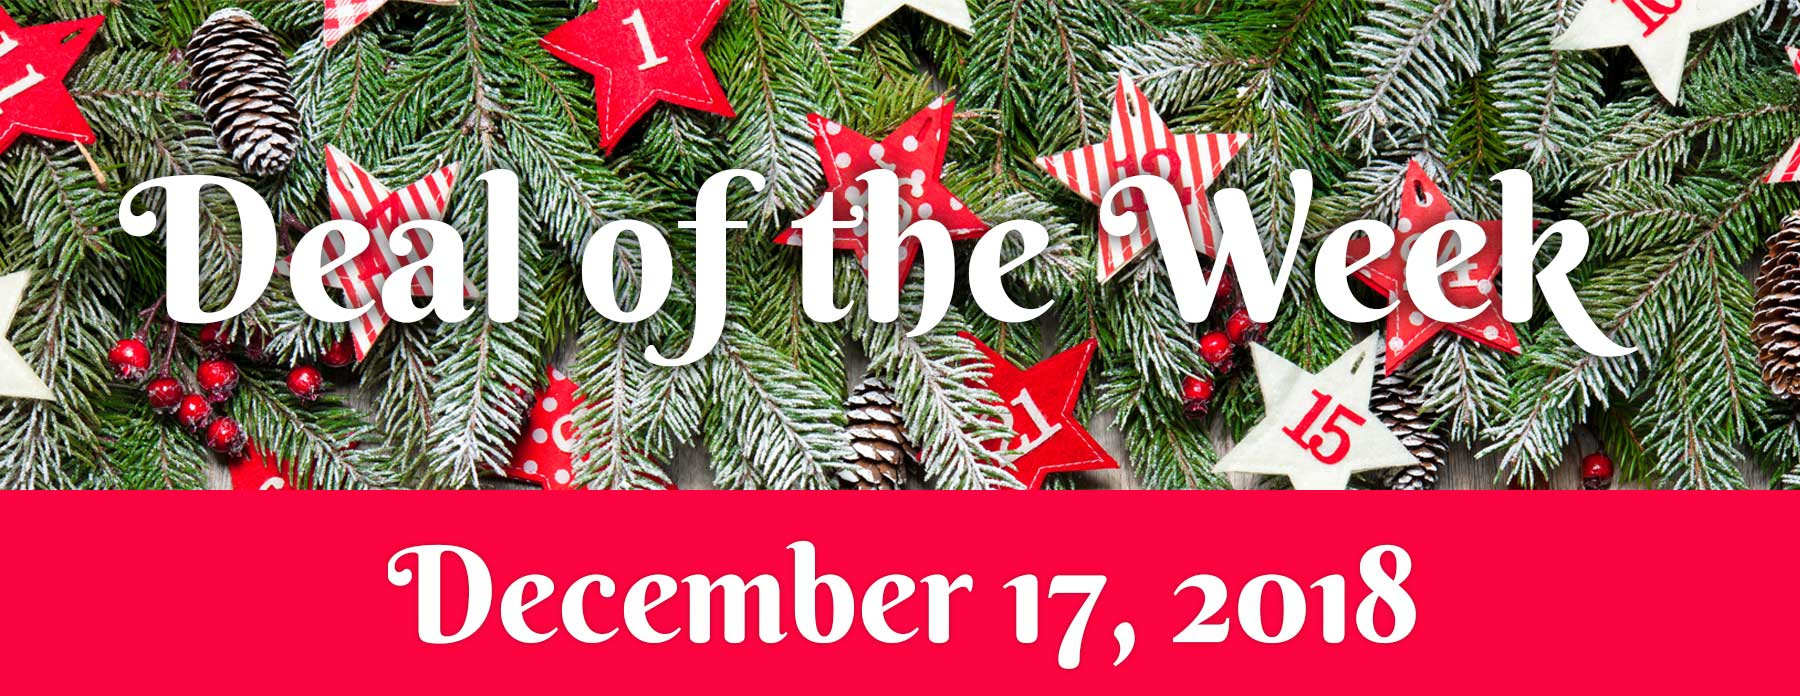 Deal Of The Week – December 17, 2018